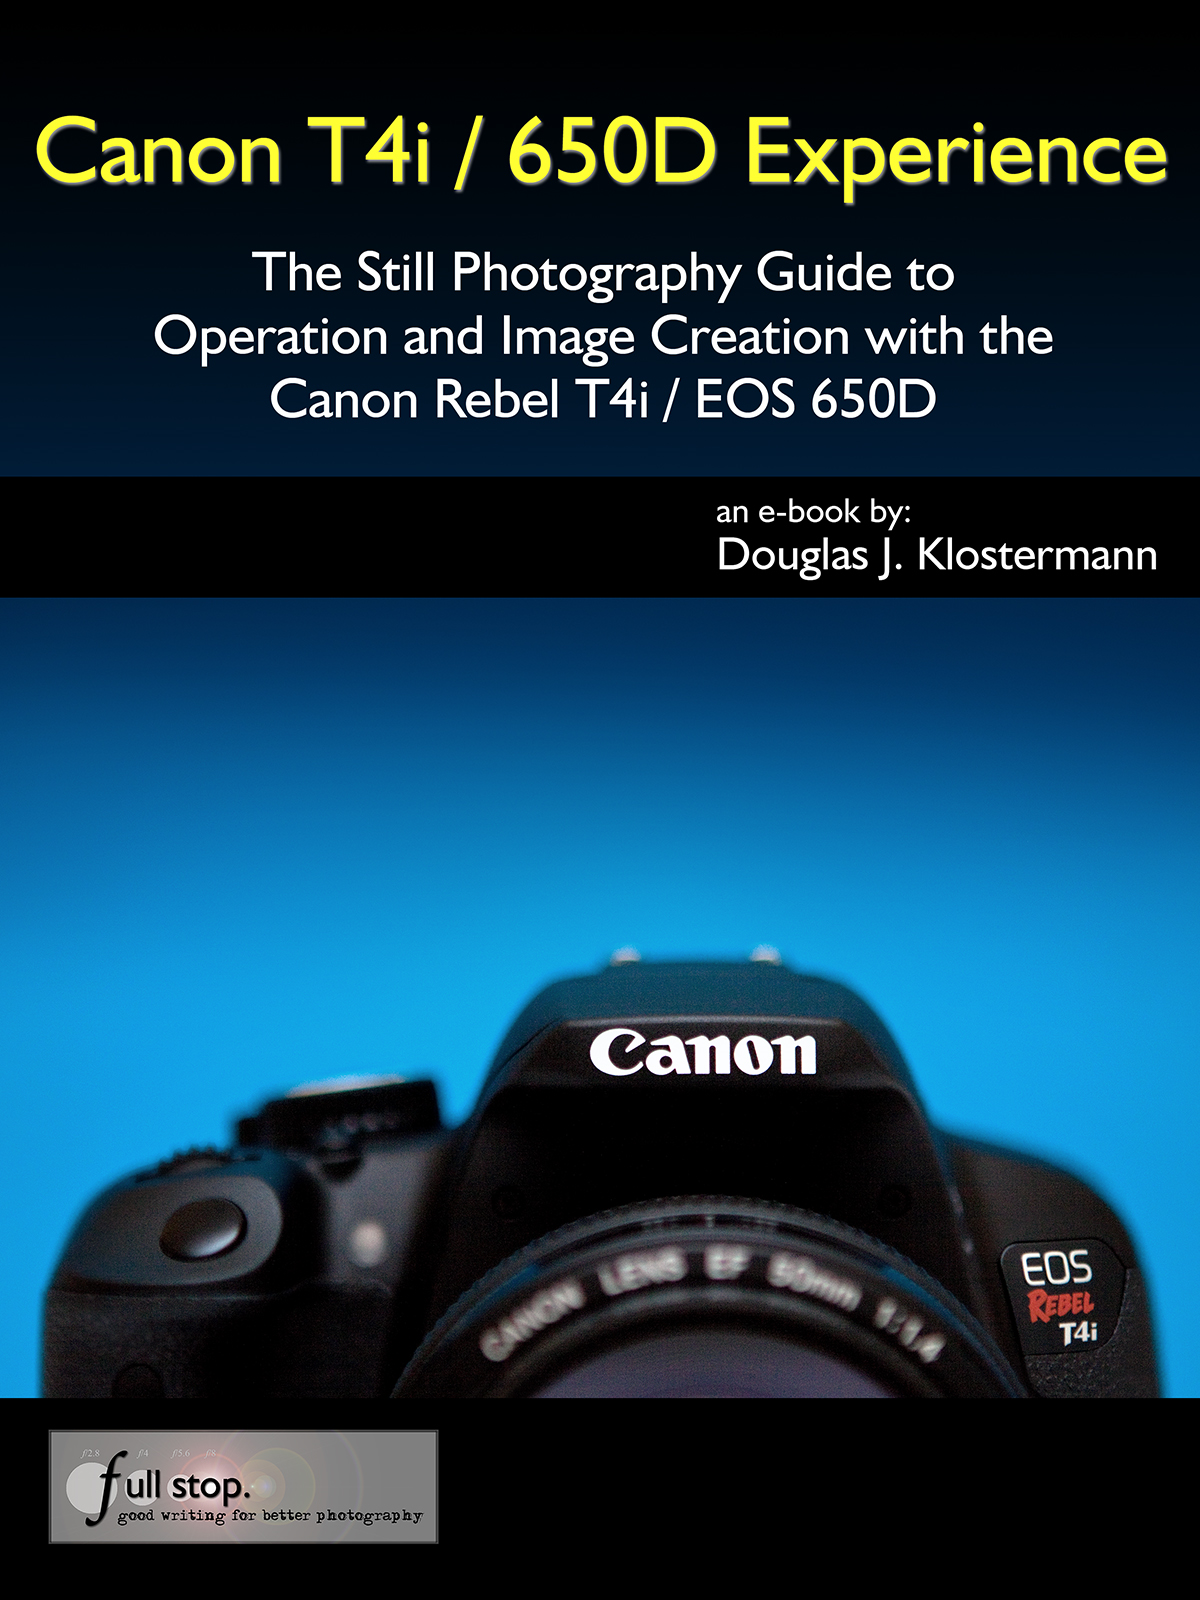 Canon T4i / 650D Experience - The Still Photography Guide to Operation and Image Creation with the Canon Rebel T4i / EOS 650D